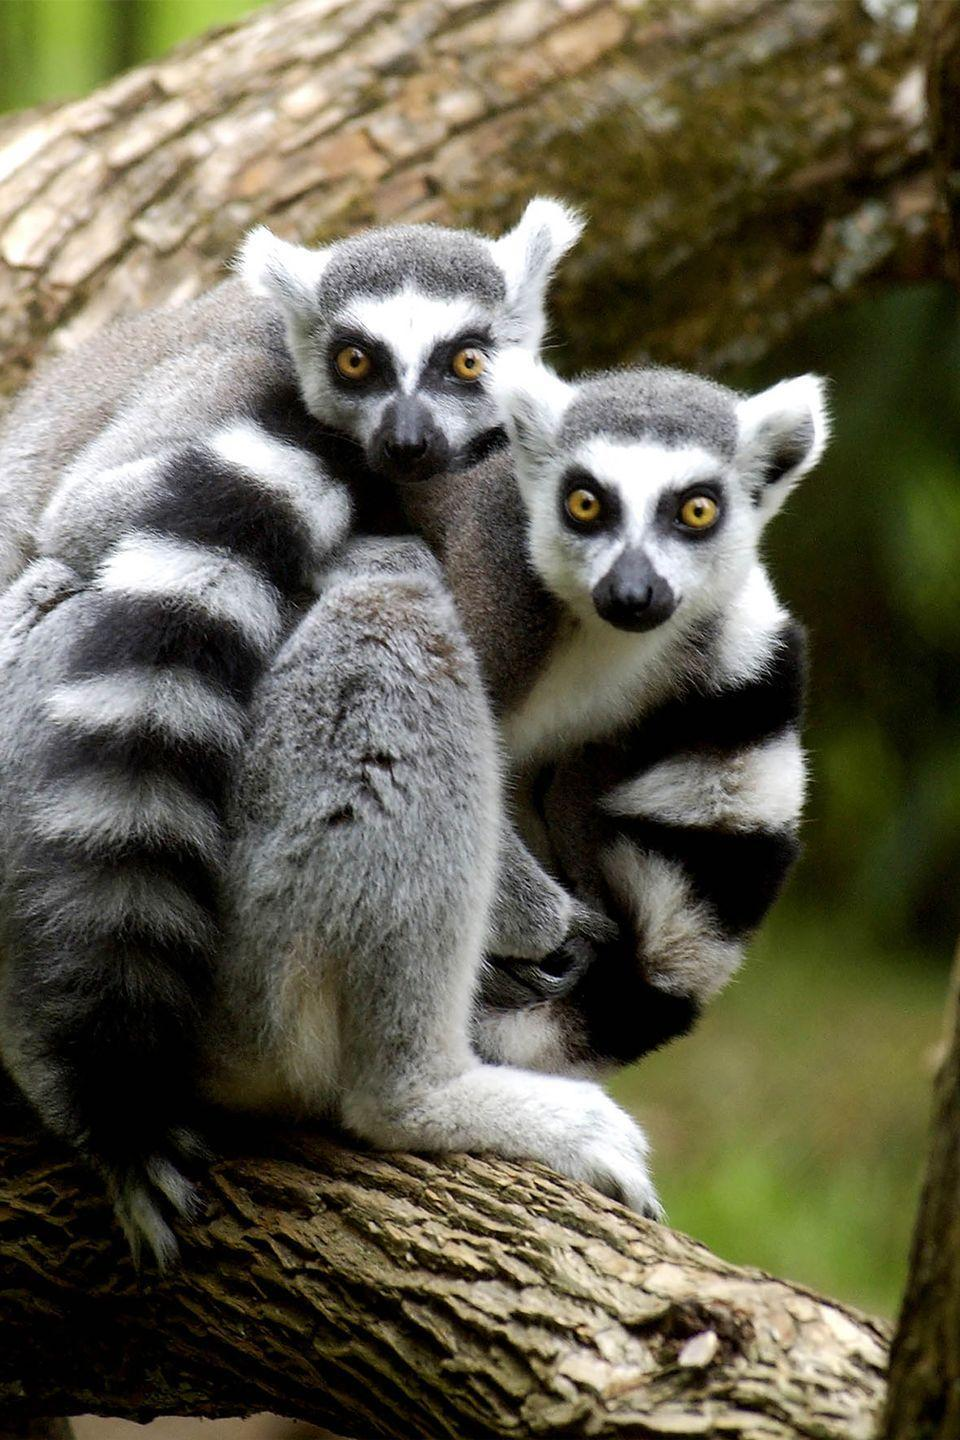 <p>Ringtail lemurs have one of the most unique conflict-resolution tactics of all animals: stink fights. Since lemurs live in large social groups of 20 to 30, breeding season can bring a lot of competition. Male ringtails have scent glands on their wrists and shoulders. The wrist gland produces a volatile, short-lived odor, while the shoulder gland produces a brown, toothpaste-like substance, which is much longer lasting. Basically, male lemurs wave their tails and waft a fragrance toward their rivals, resulting in a smelly standoff until someone backs off.</p>